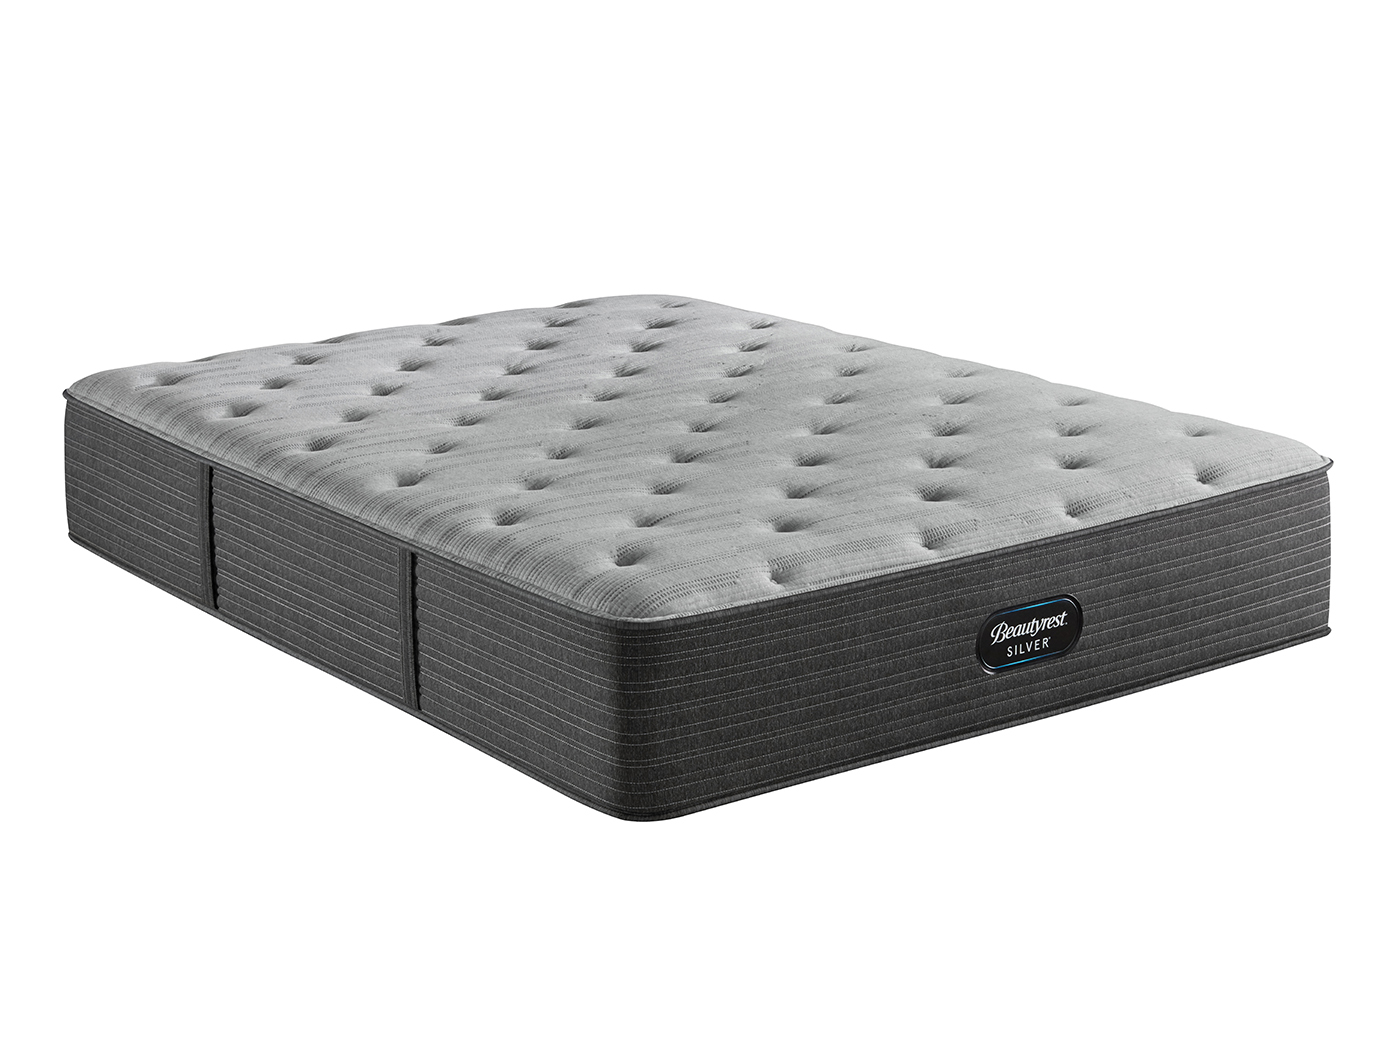 Beautyrest Silver BRS900C-RS Plush Queen Mattress